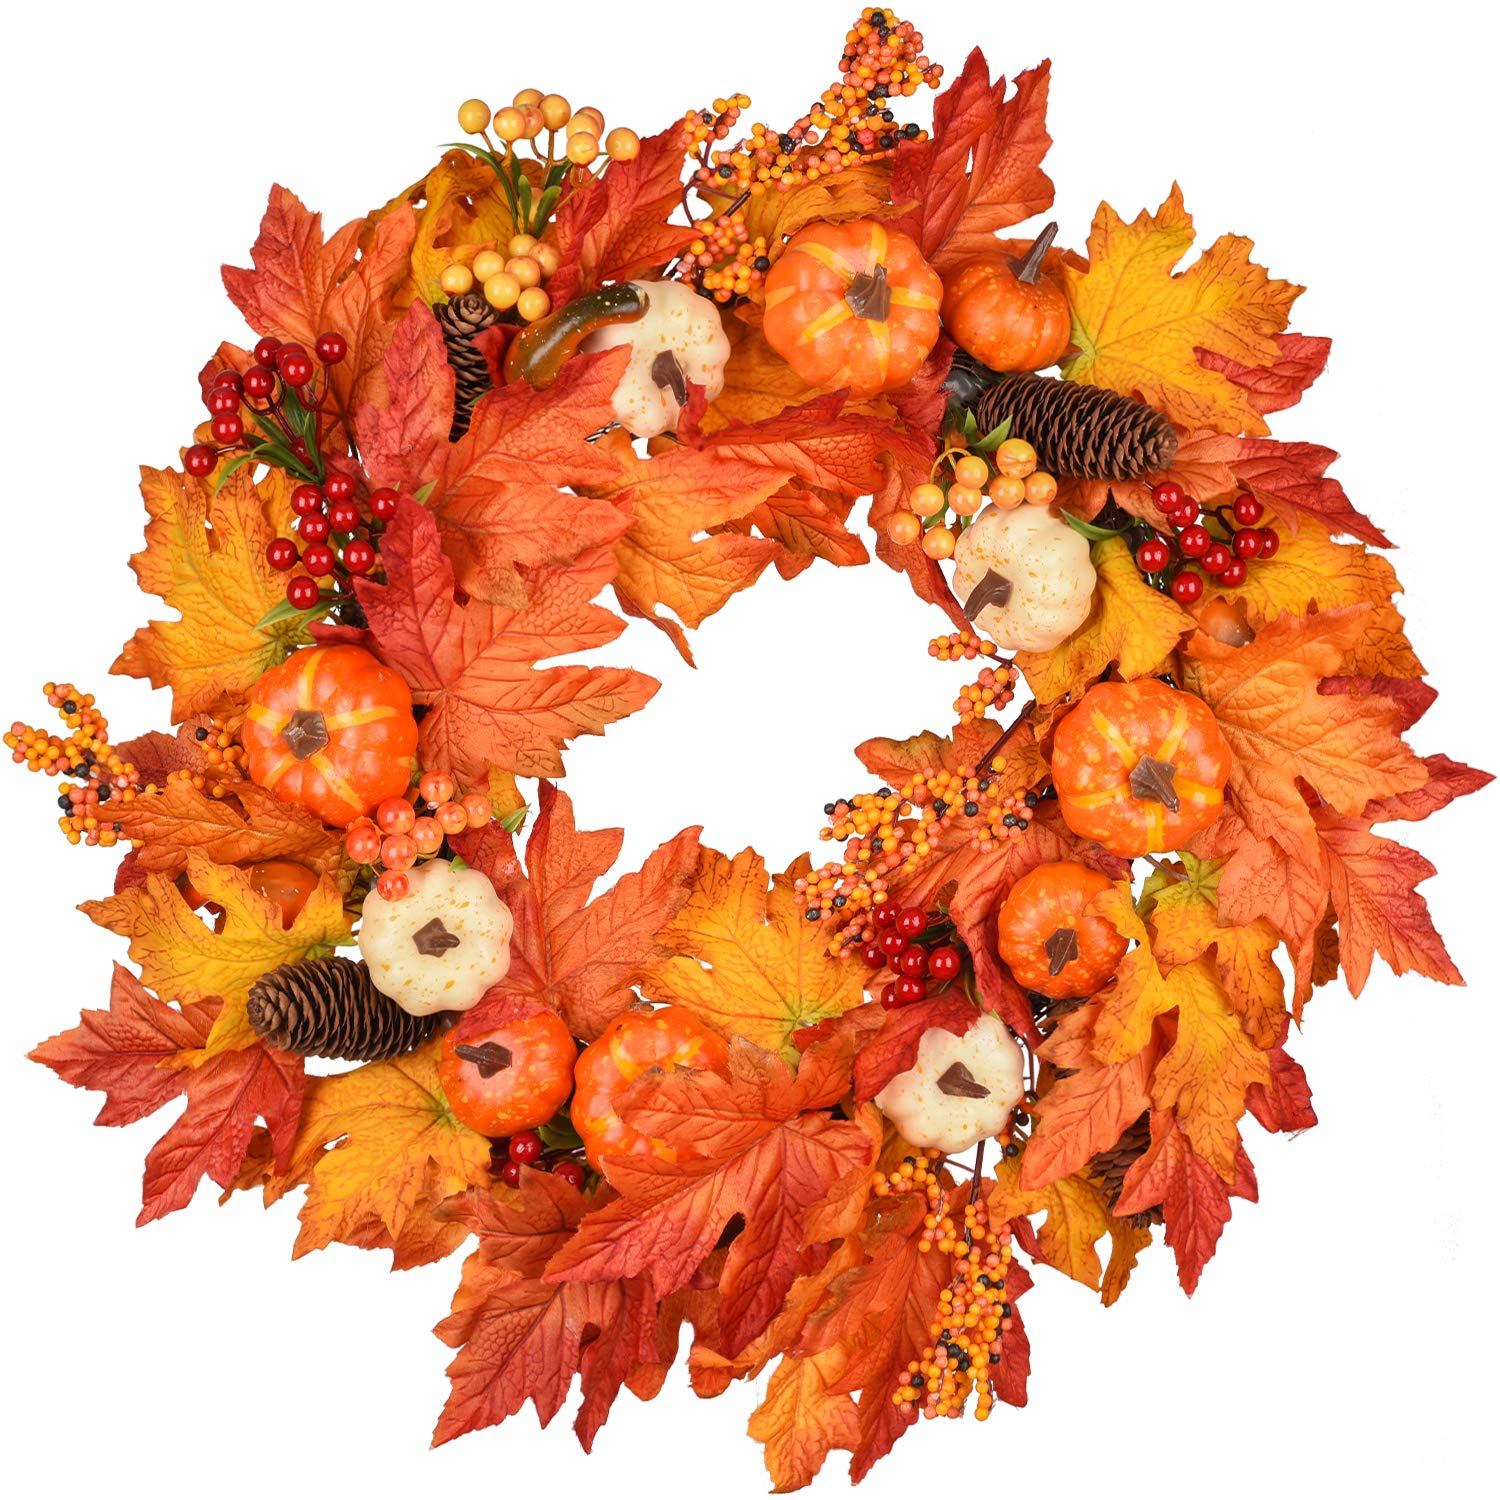 DearHouse 22 Inch Fall Wreath, Autumn Maple Leaf Harvest Thanksgiving Door Wreath for Front Door with Pumpkins, Pinecone, Maple Leaf and Berry by DearHouse